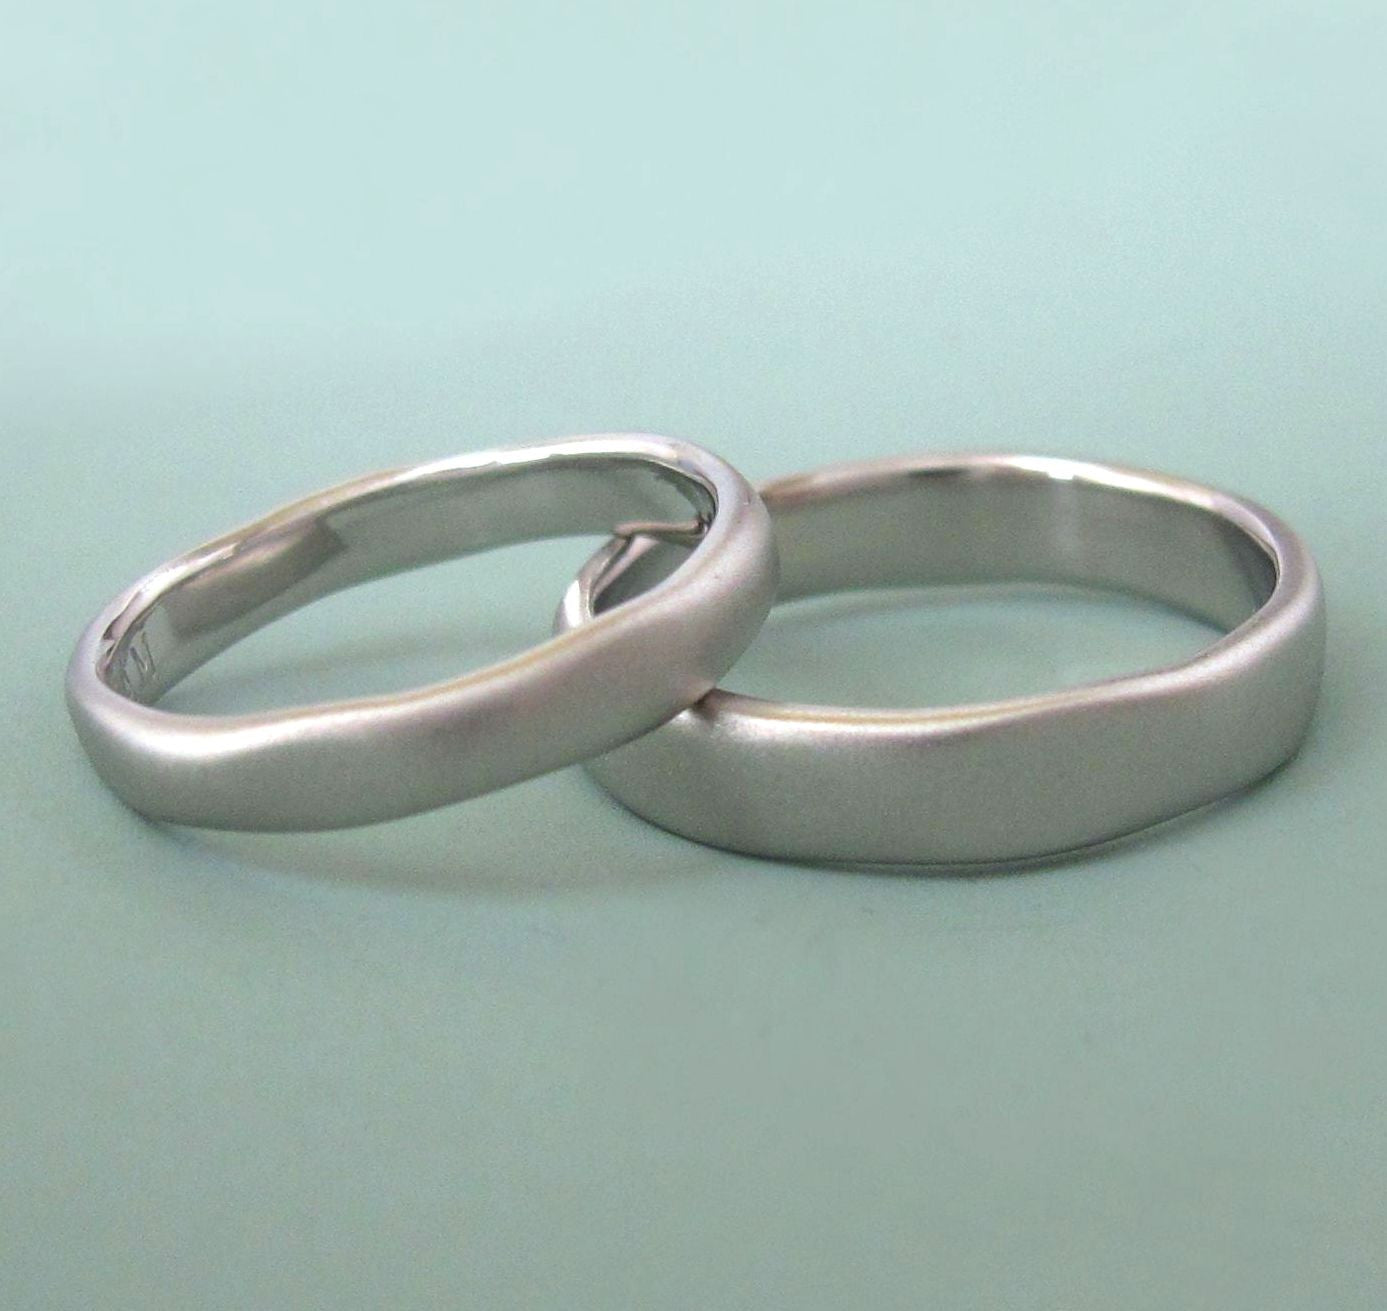 River Wedding Band in Palladium 950 - Choose a Width - Matte or Polished Finish